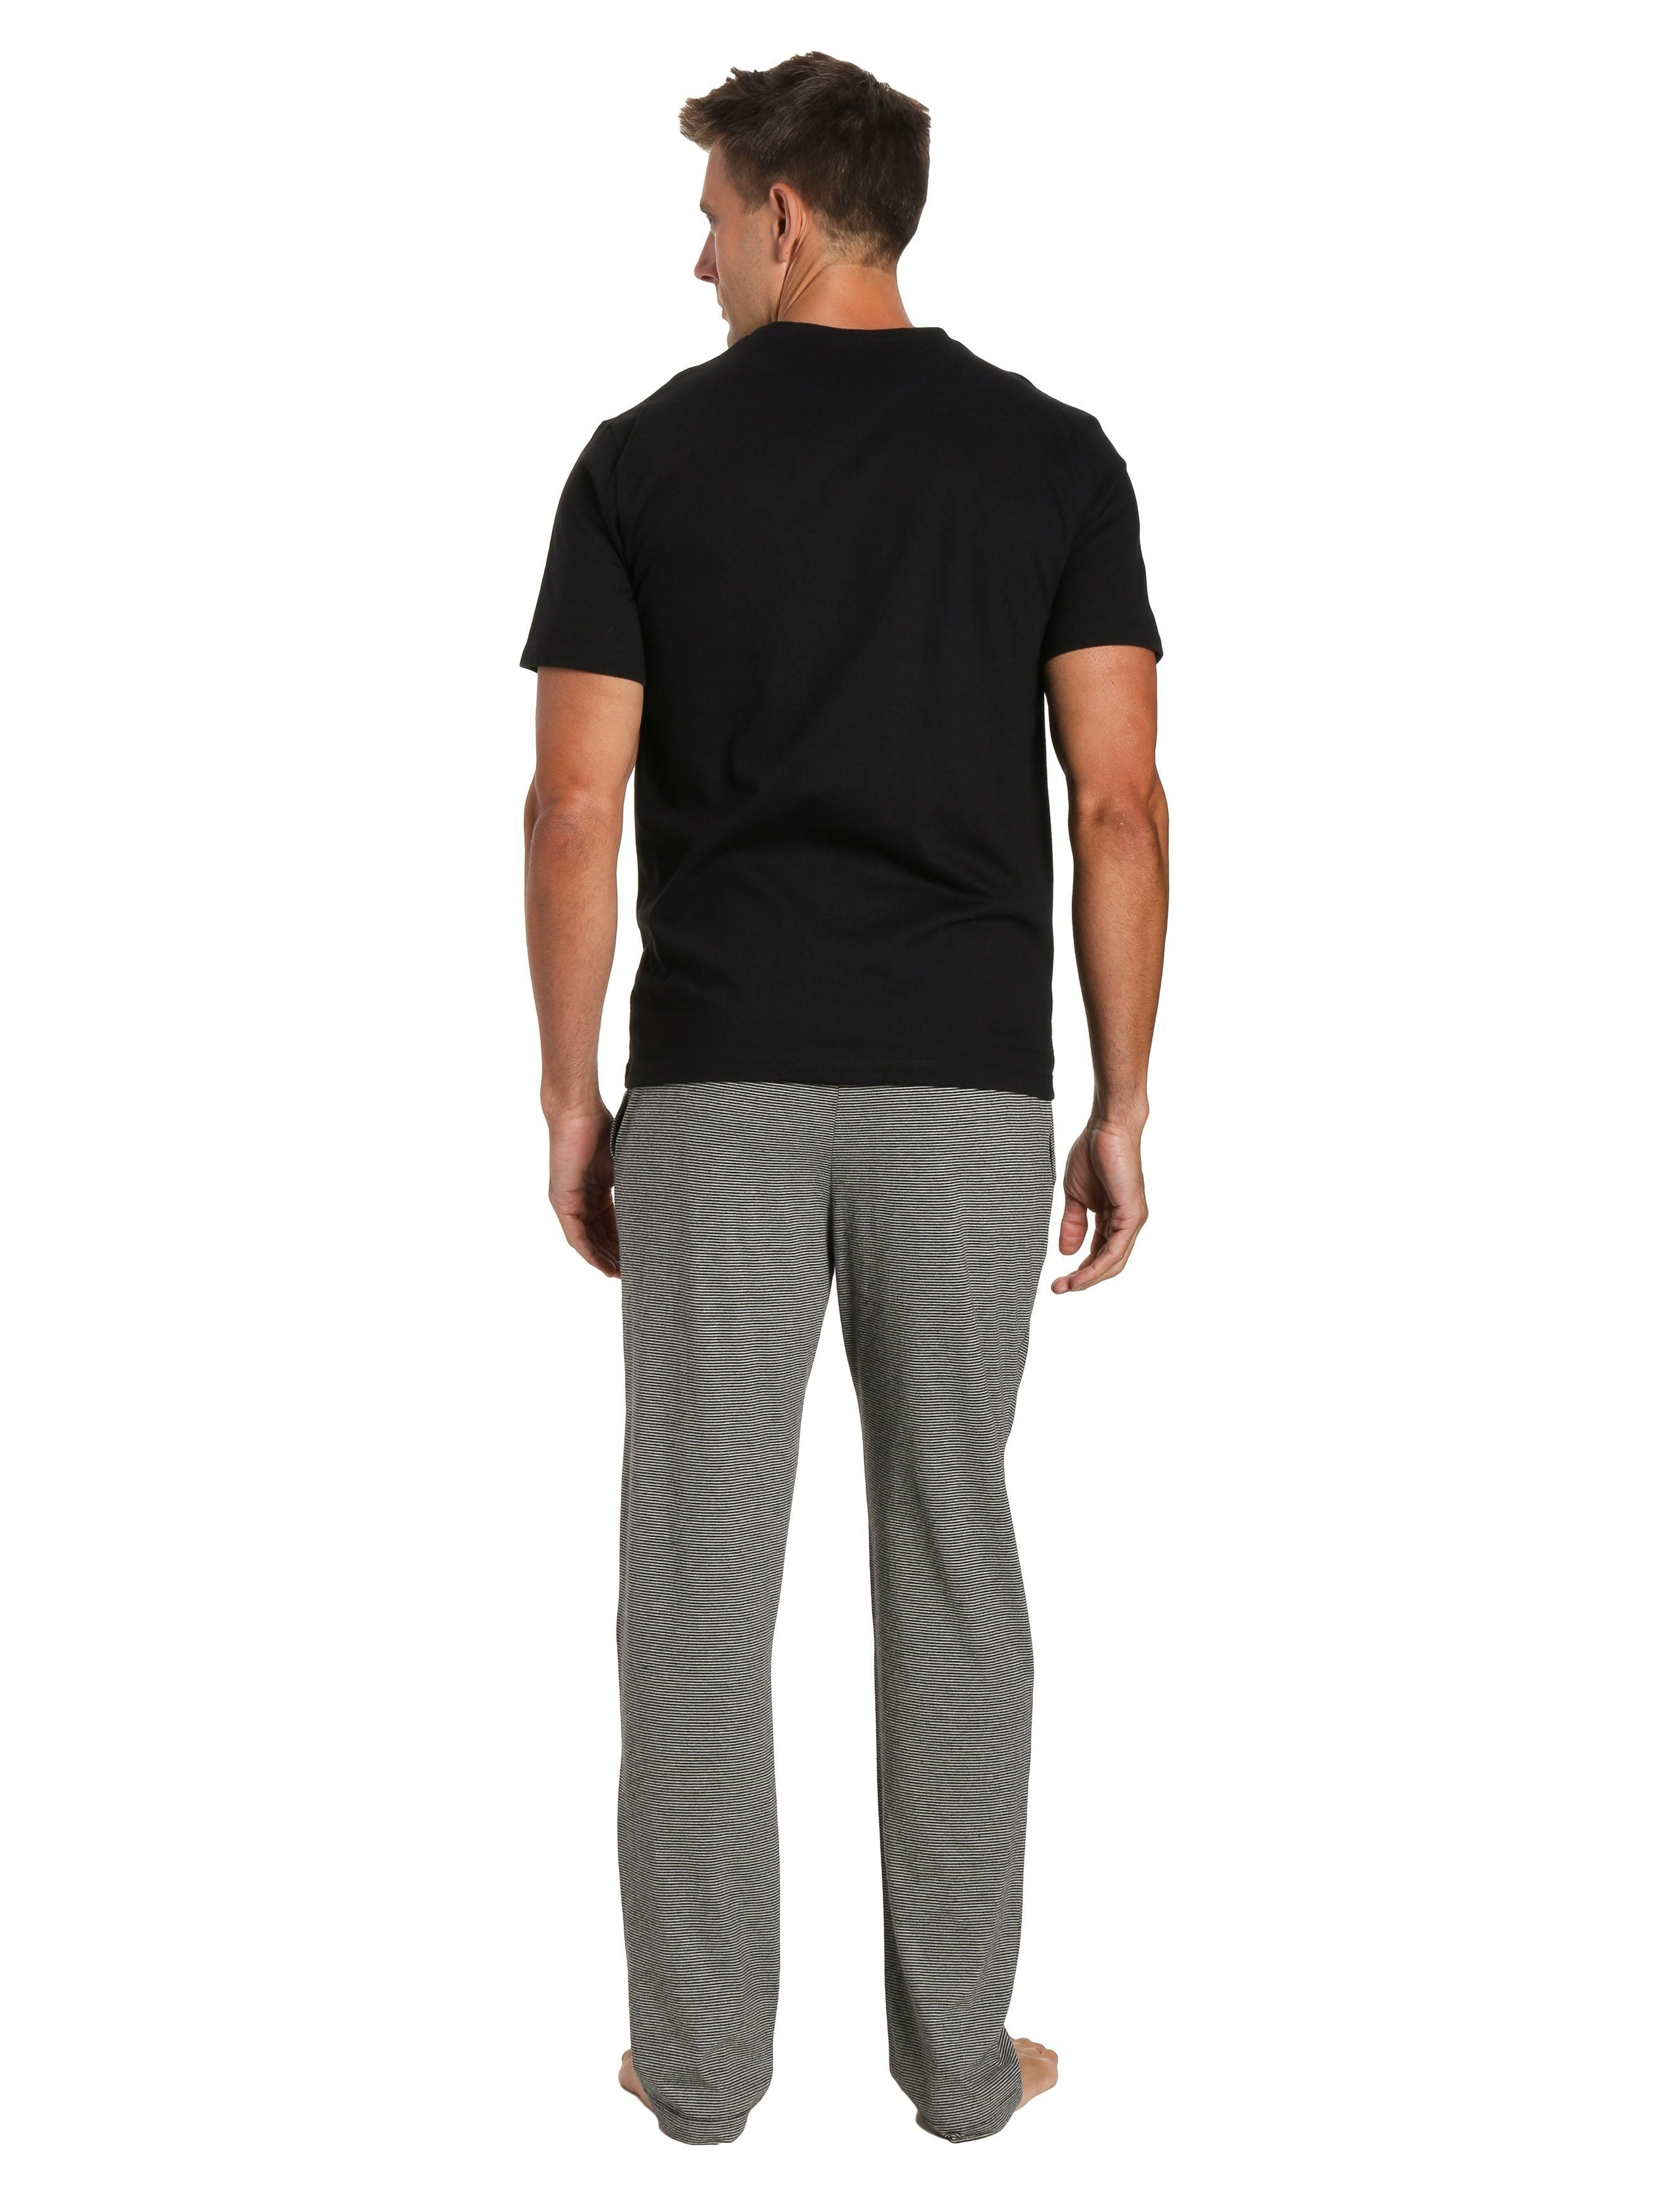 Stripe Gray Pant with Black Top